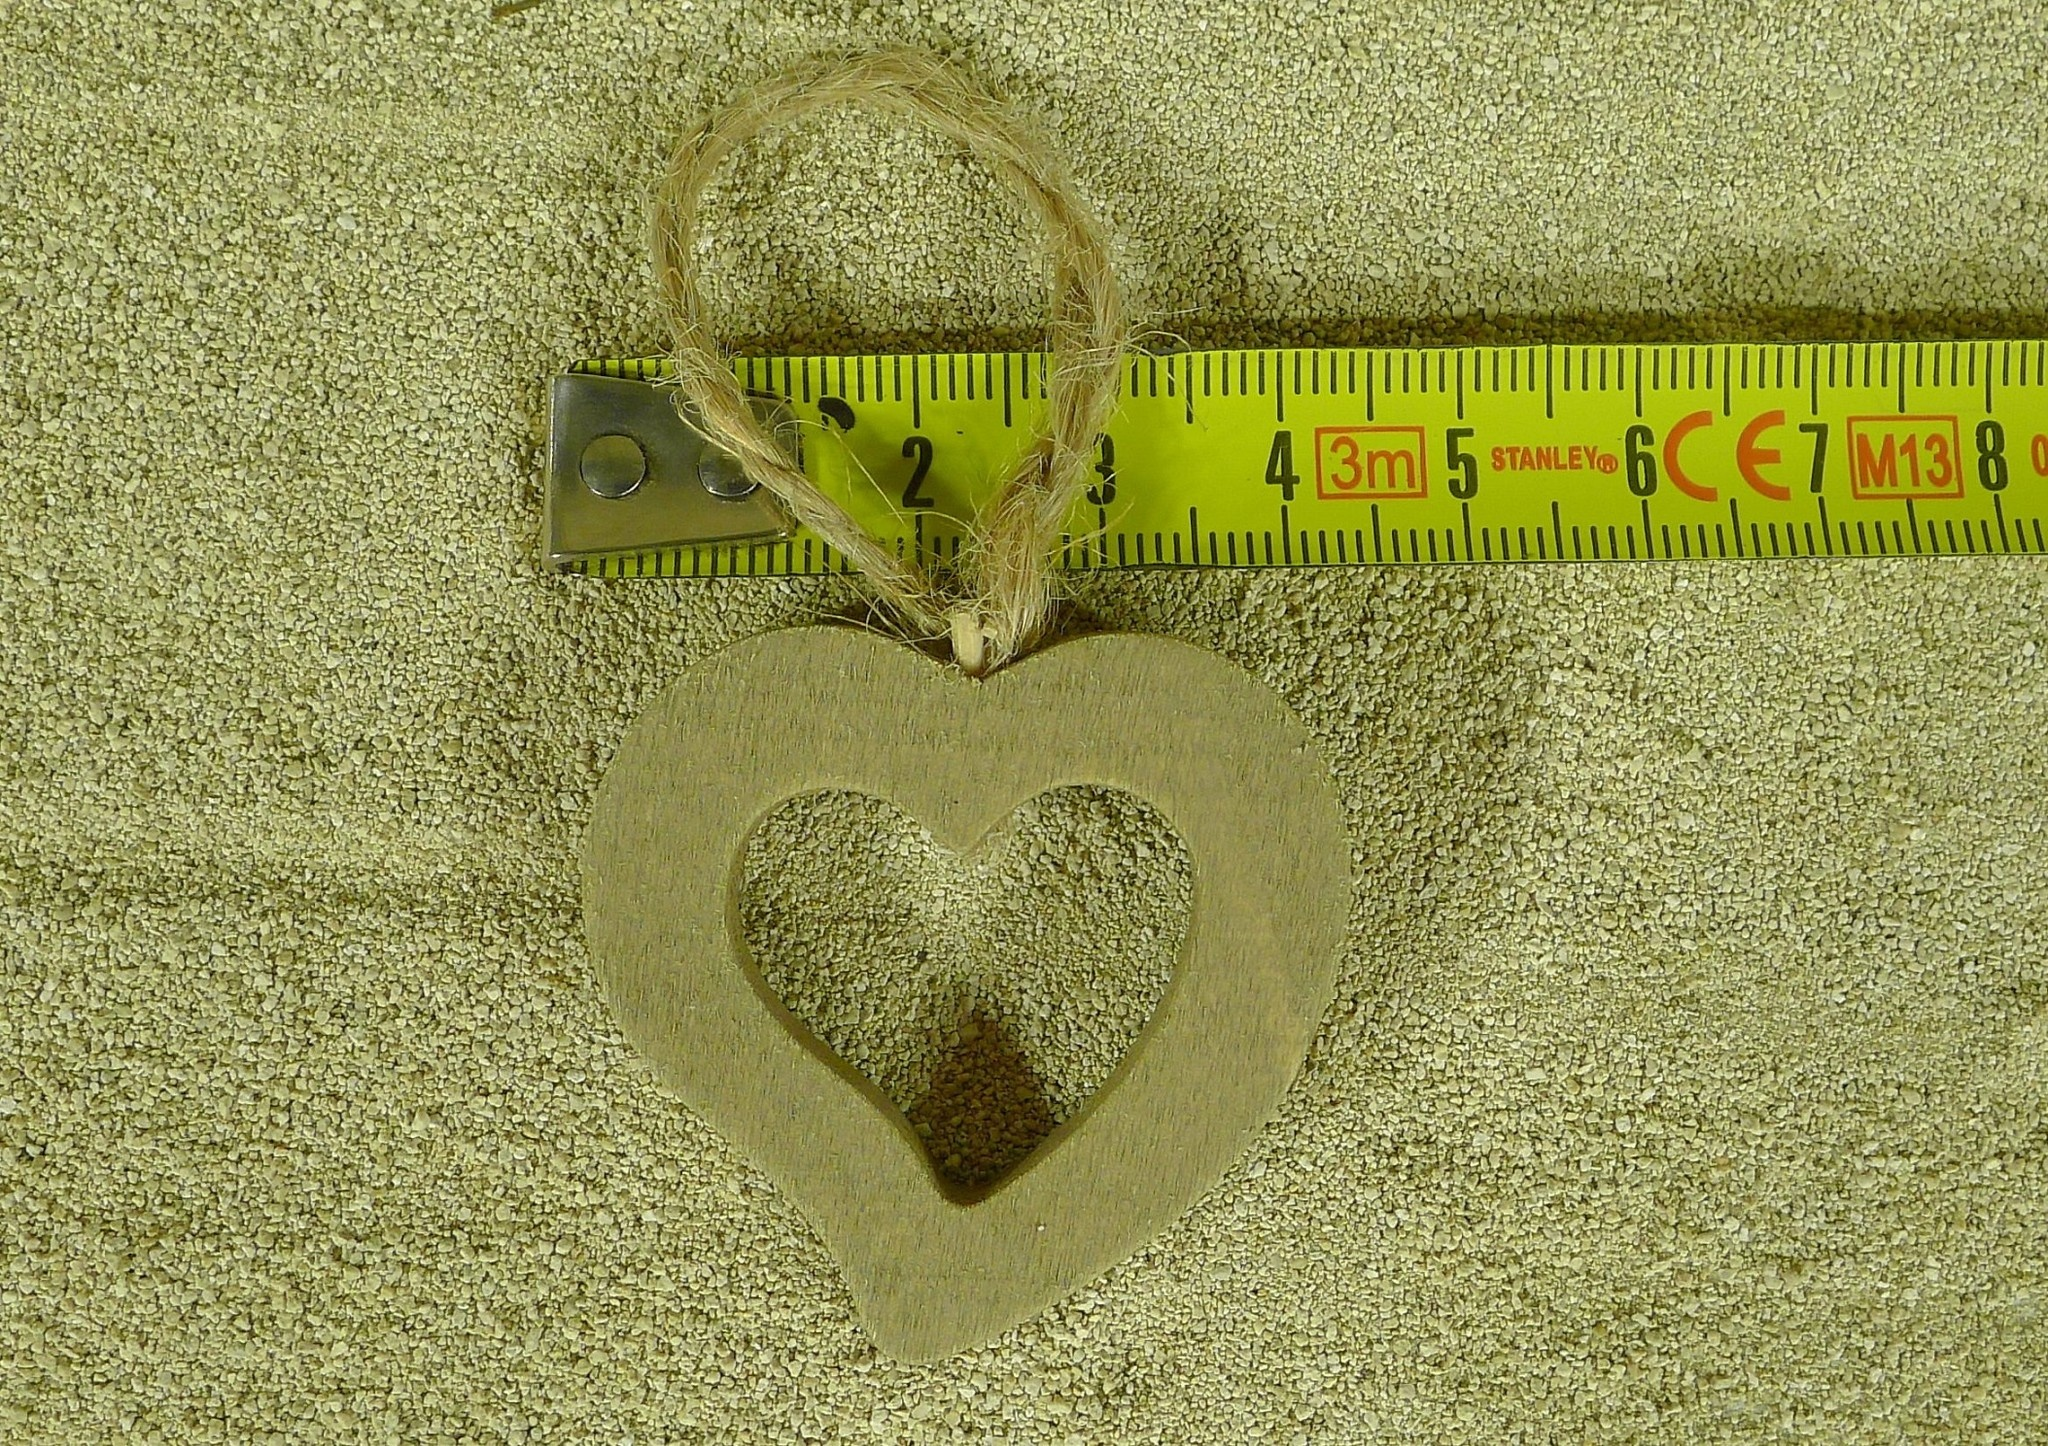 flor dec	wood	heart grey 4-3